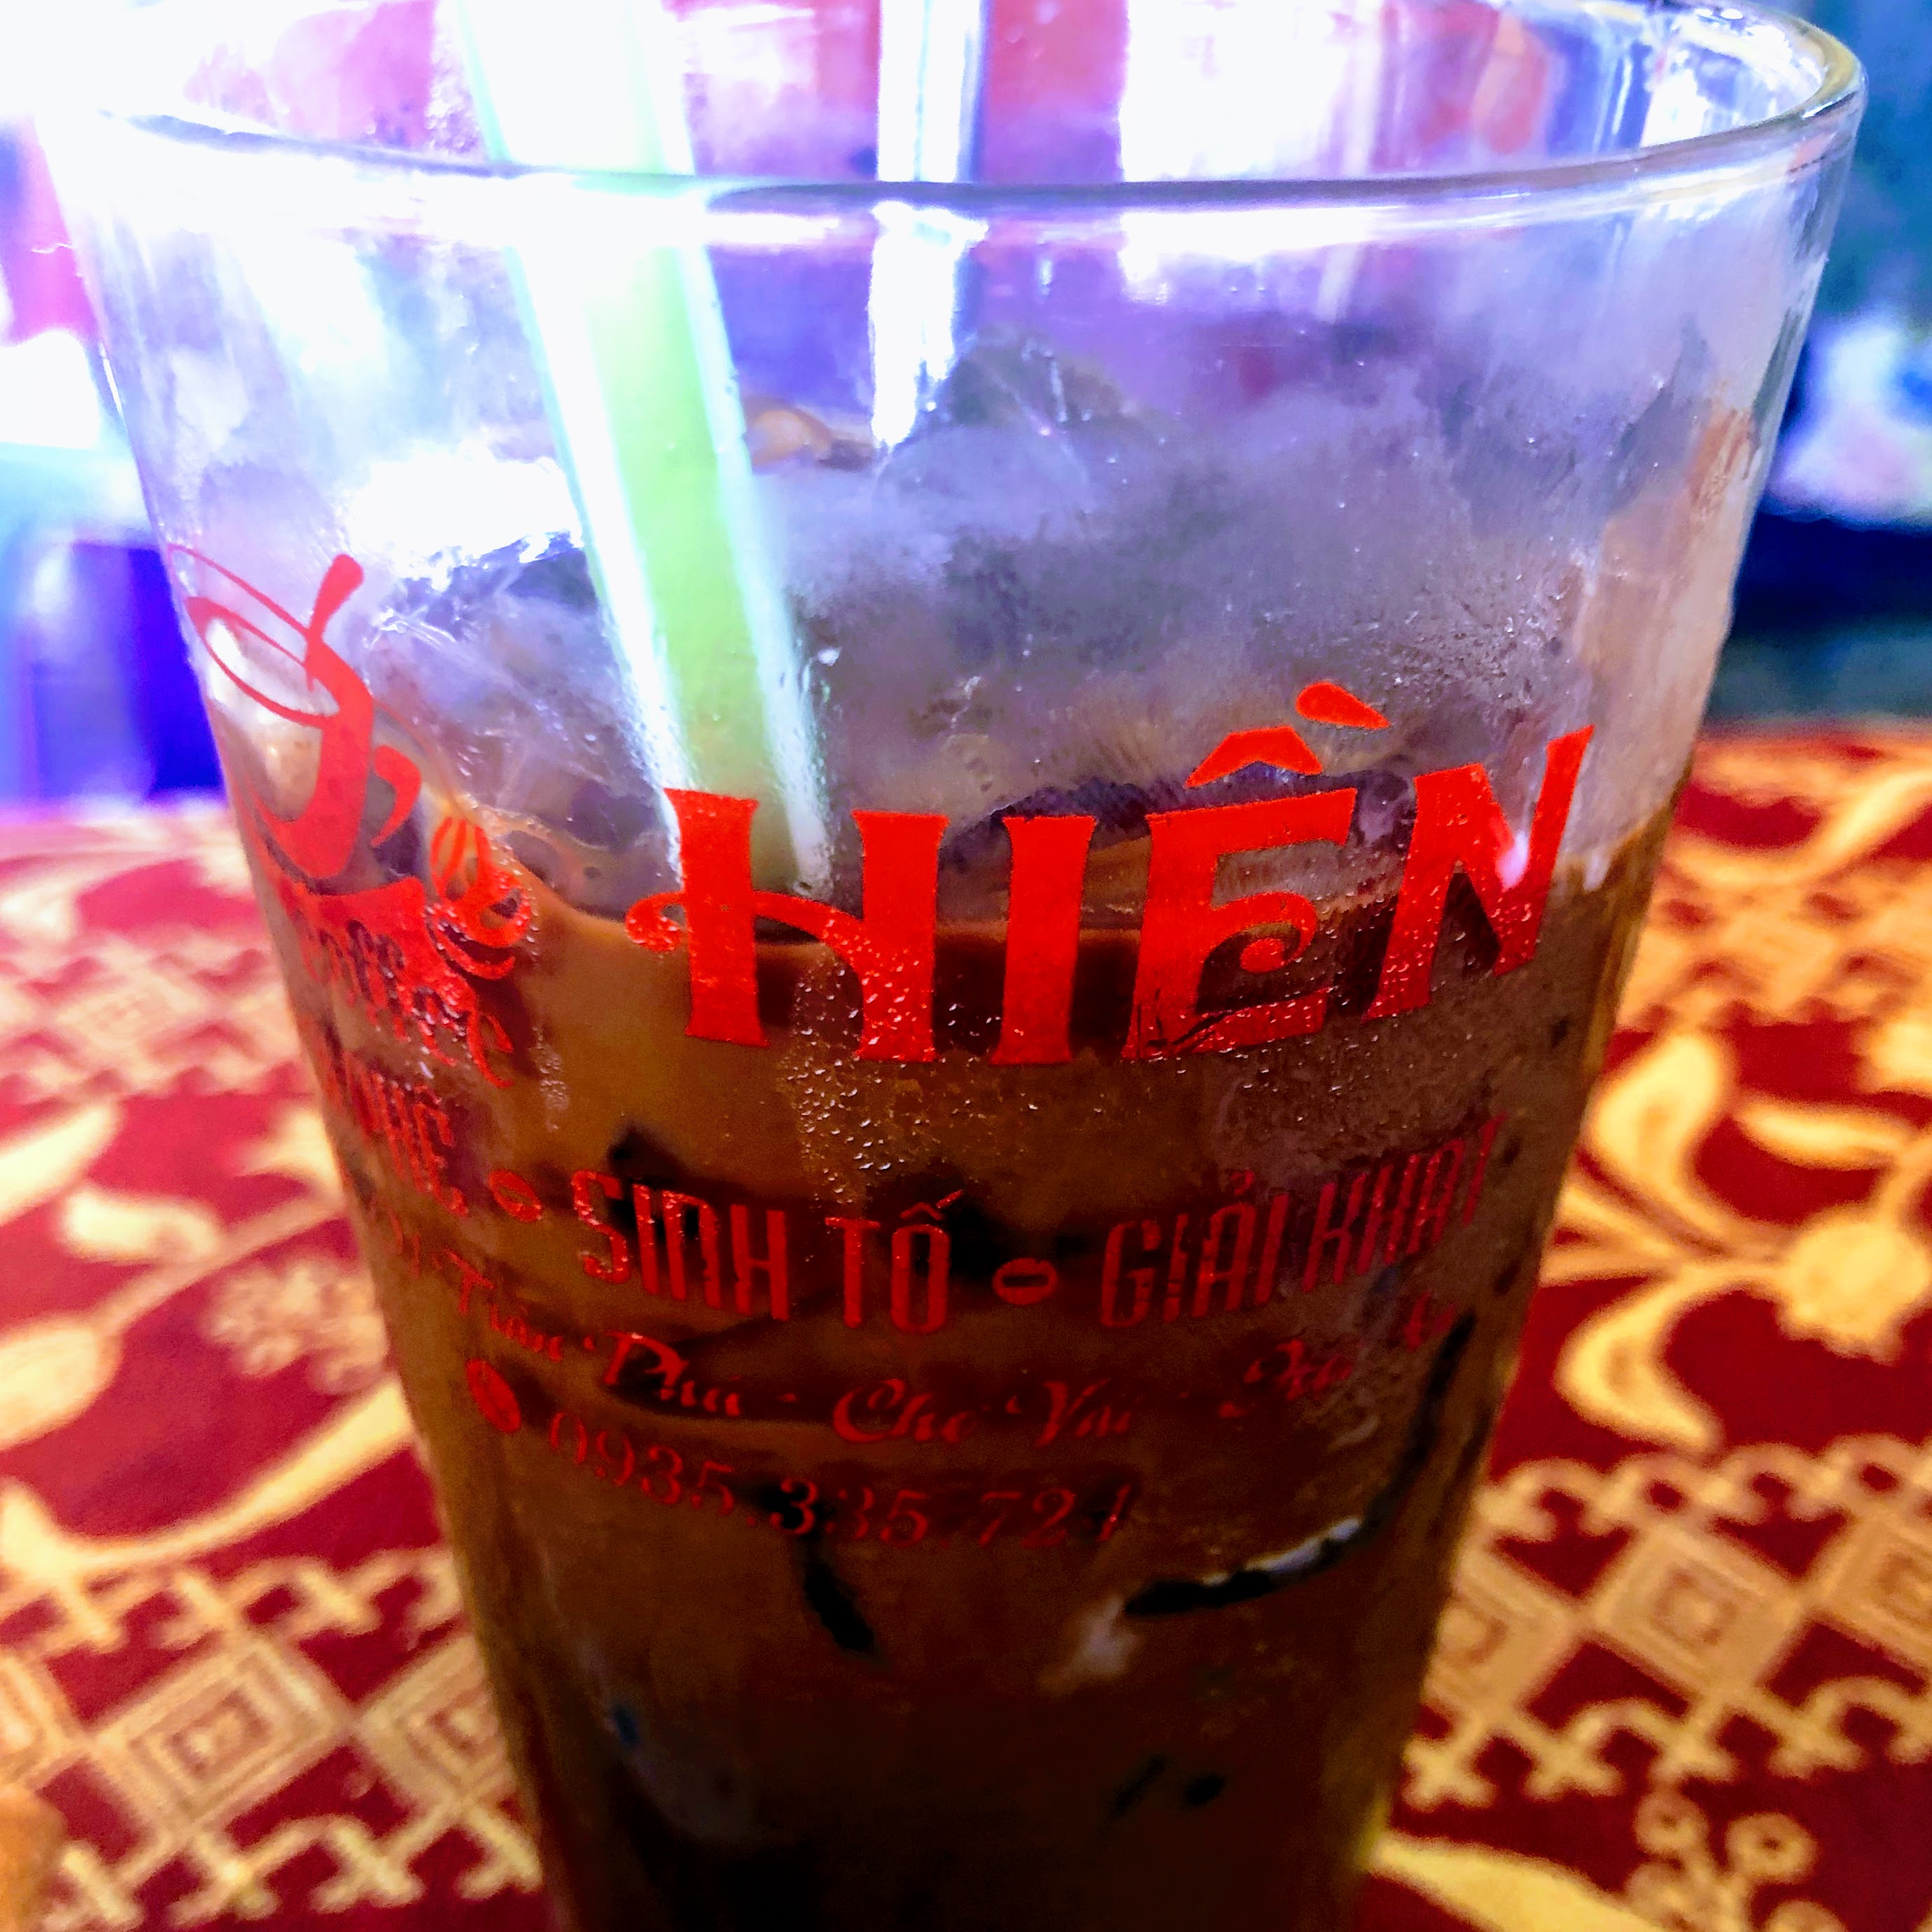 A glass of Vietnamese iced coffee with Vietnamese lettering on the glass